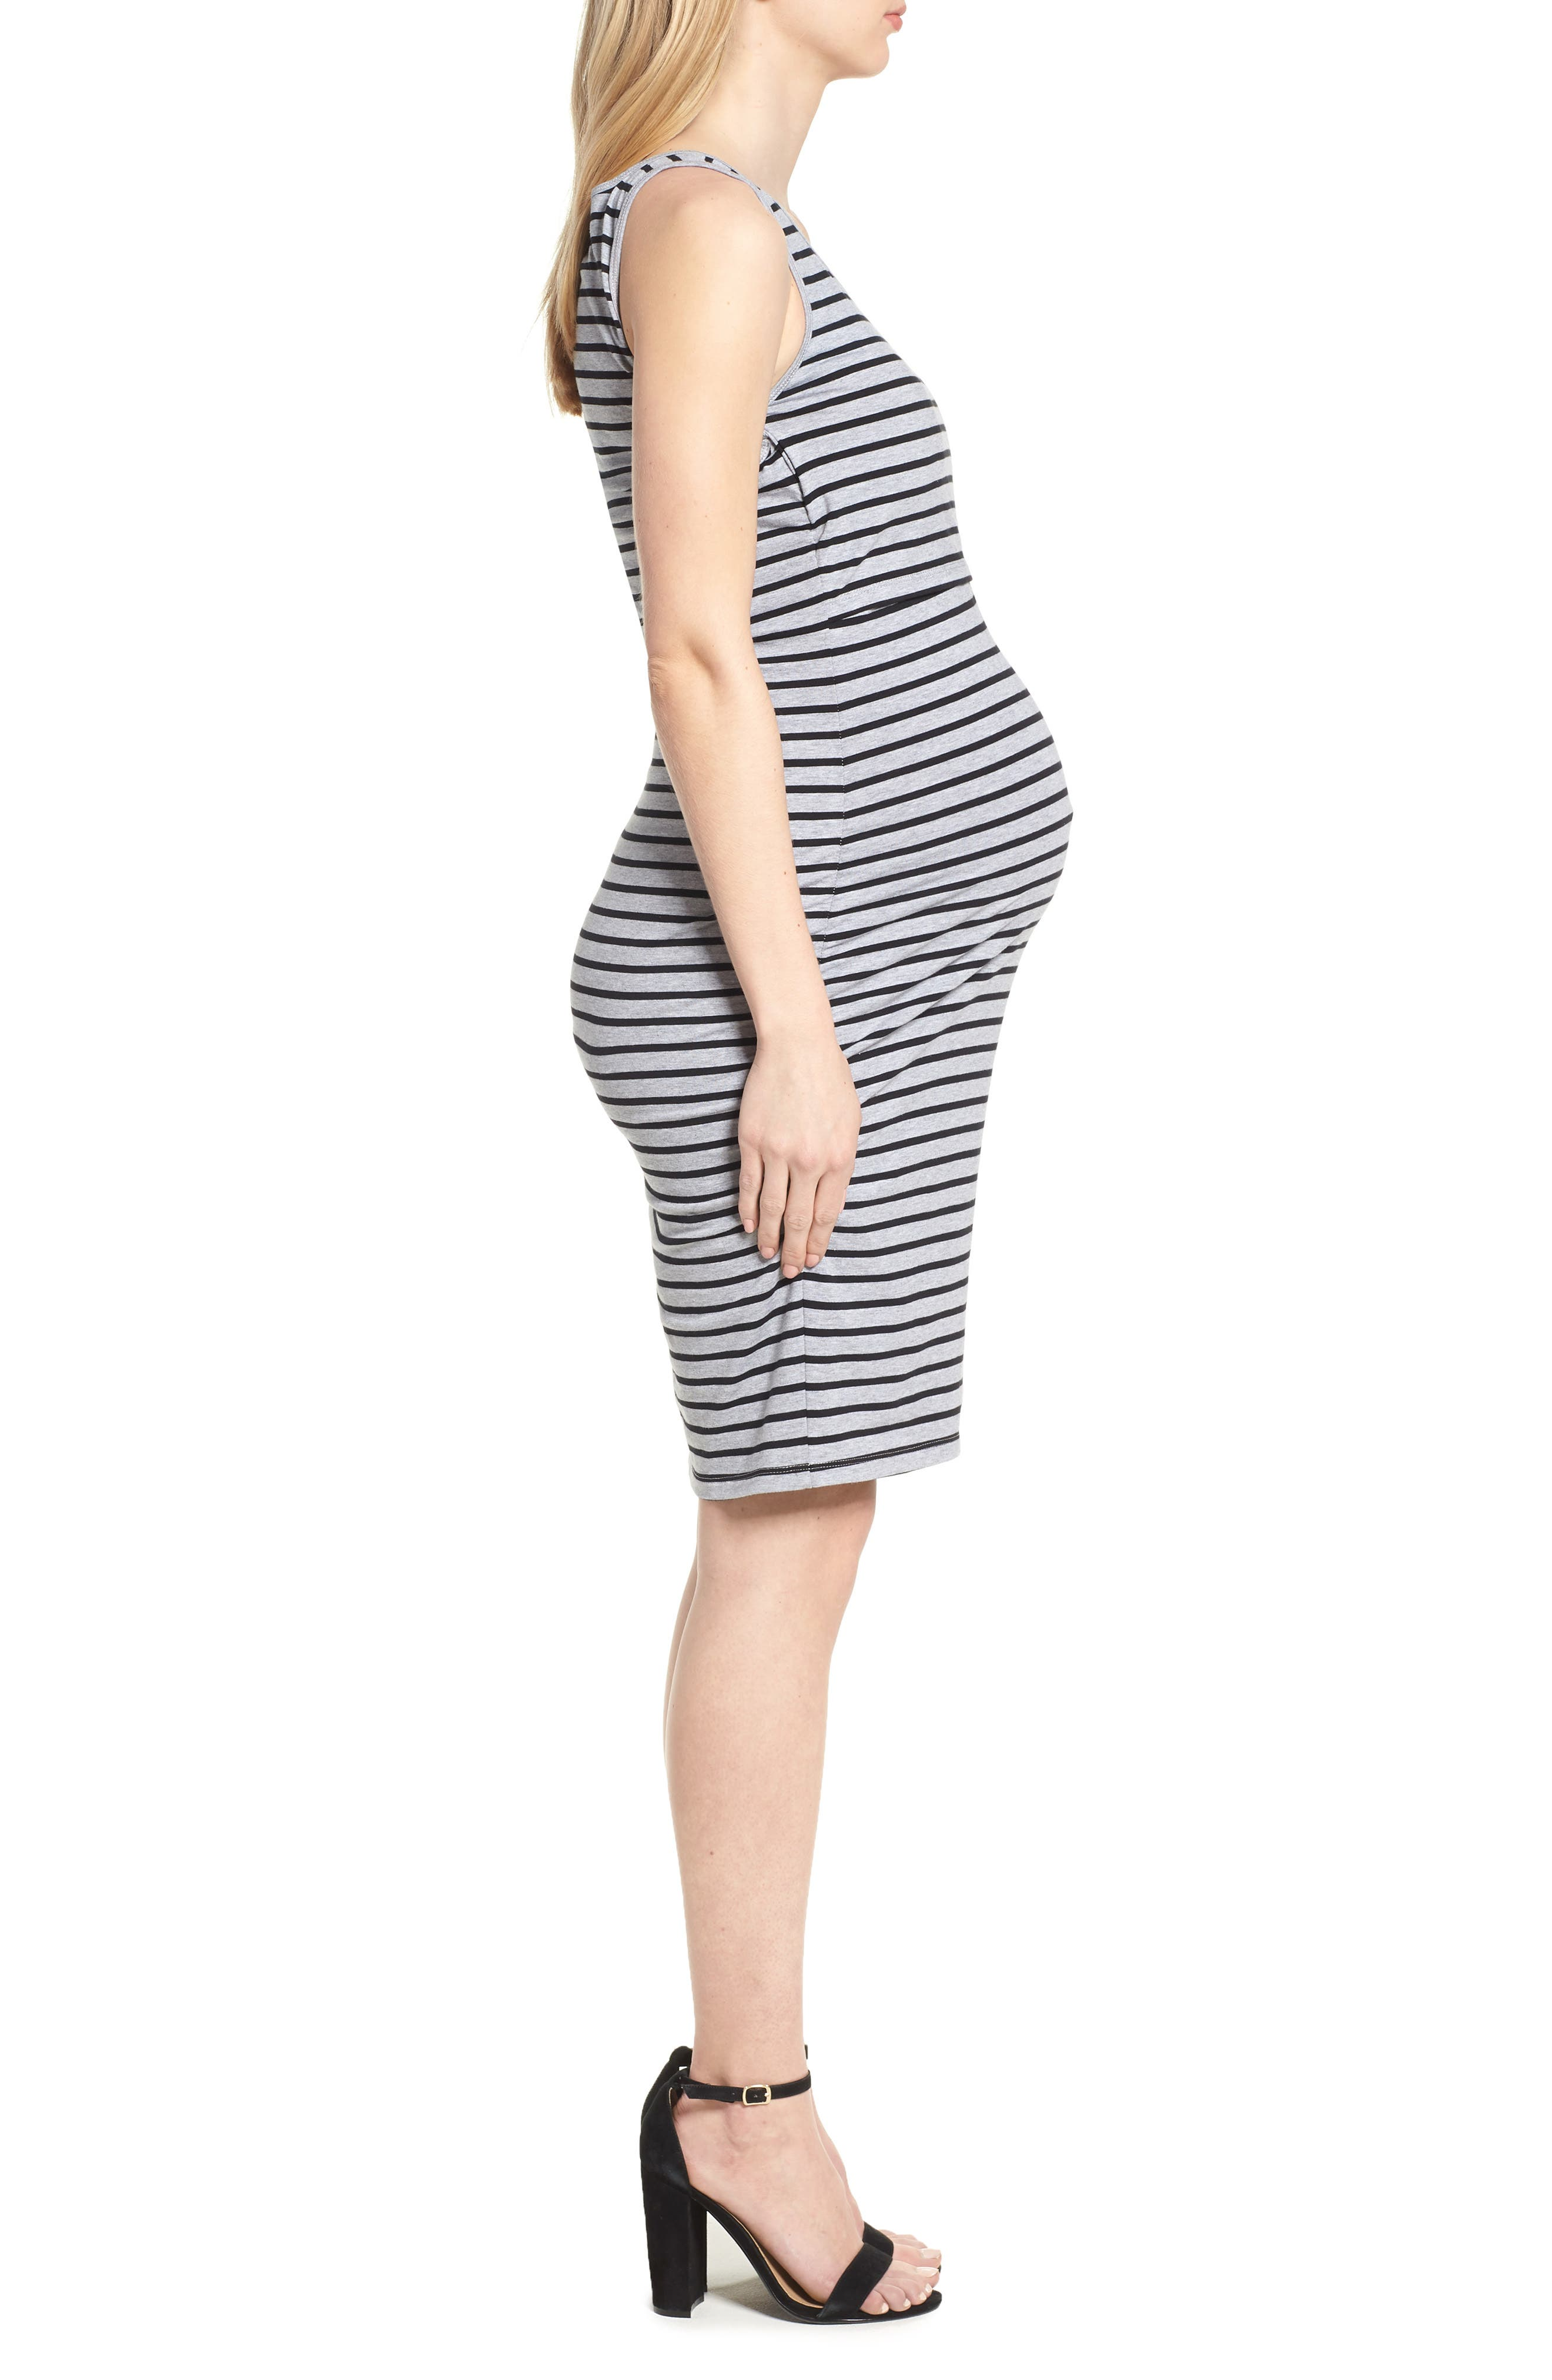 Maternity/Nursing Tank Dress,                             Alternate thumbnail 3, color,                             Grey/ Black